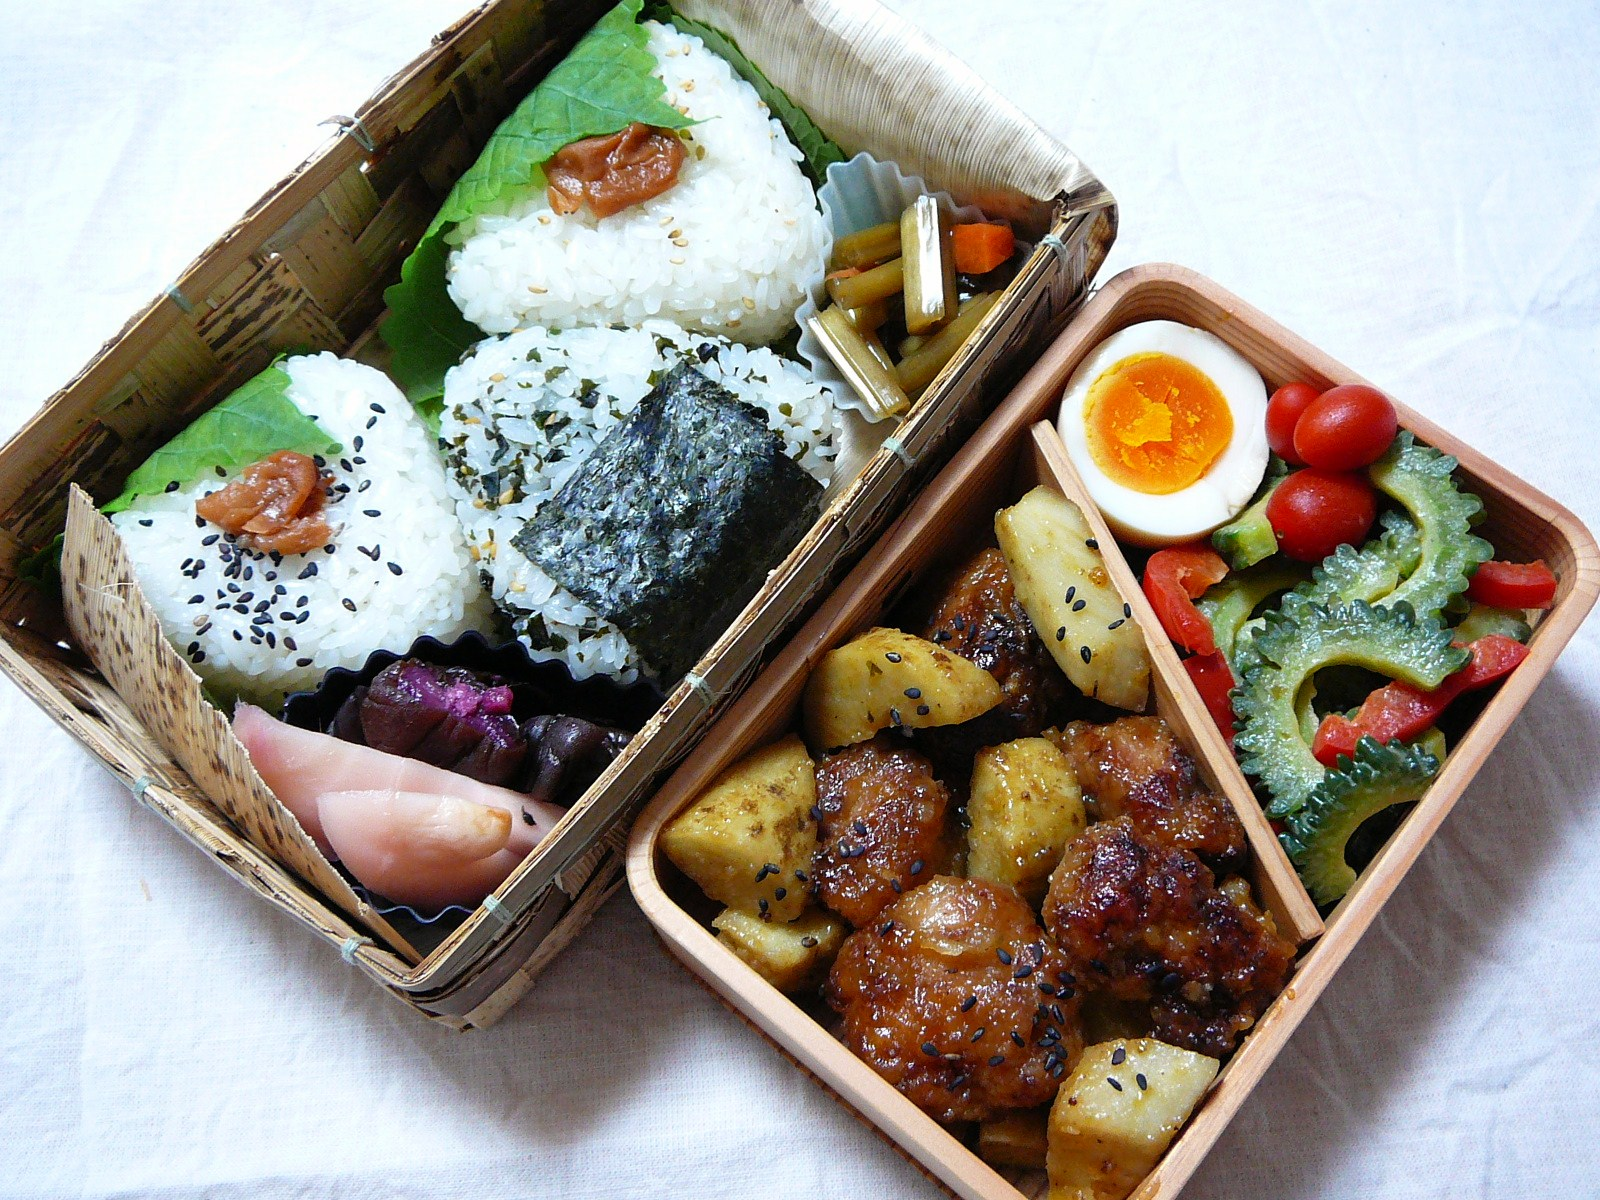 Today's Bento/Lunch Box (12/29): Karaage and Burdock Bento ...